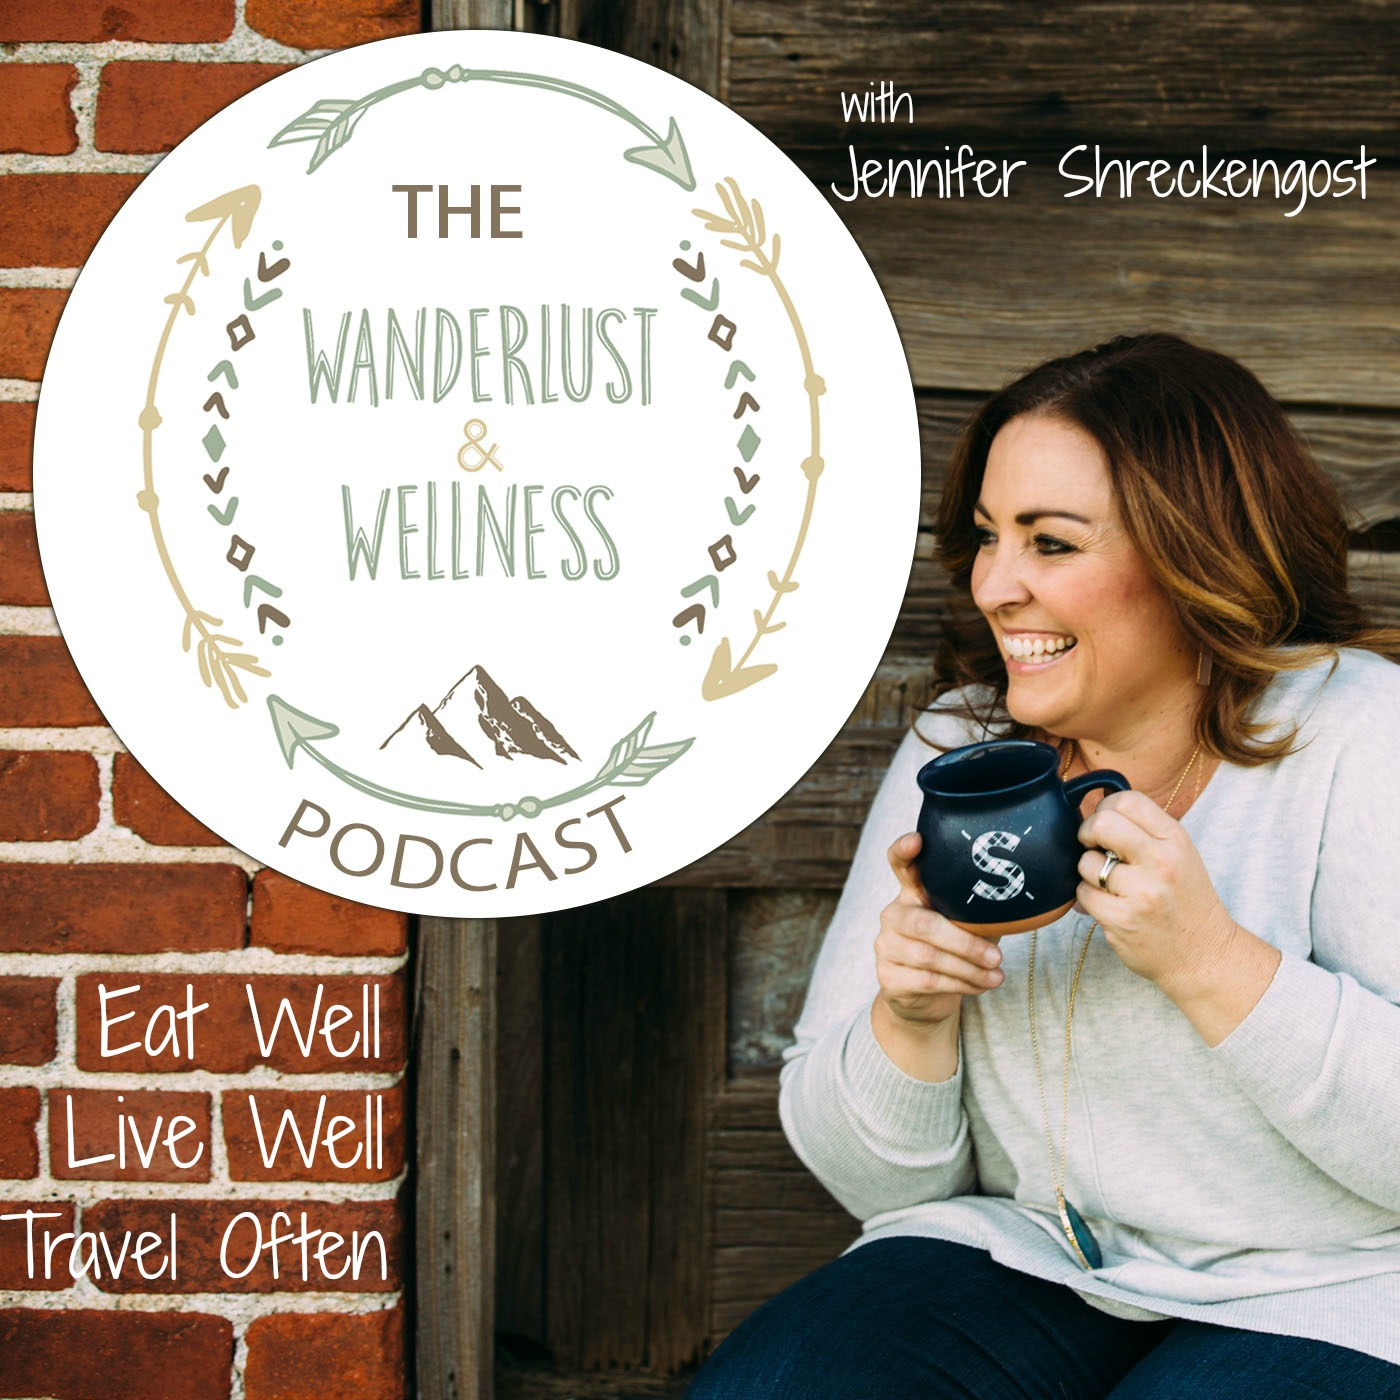 Wwp017 Learning To Eat Intuitively With Kasey Goins By